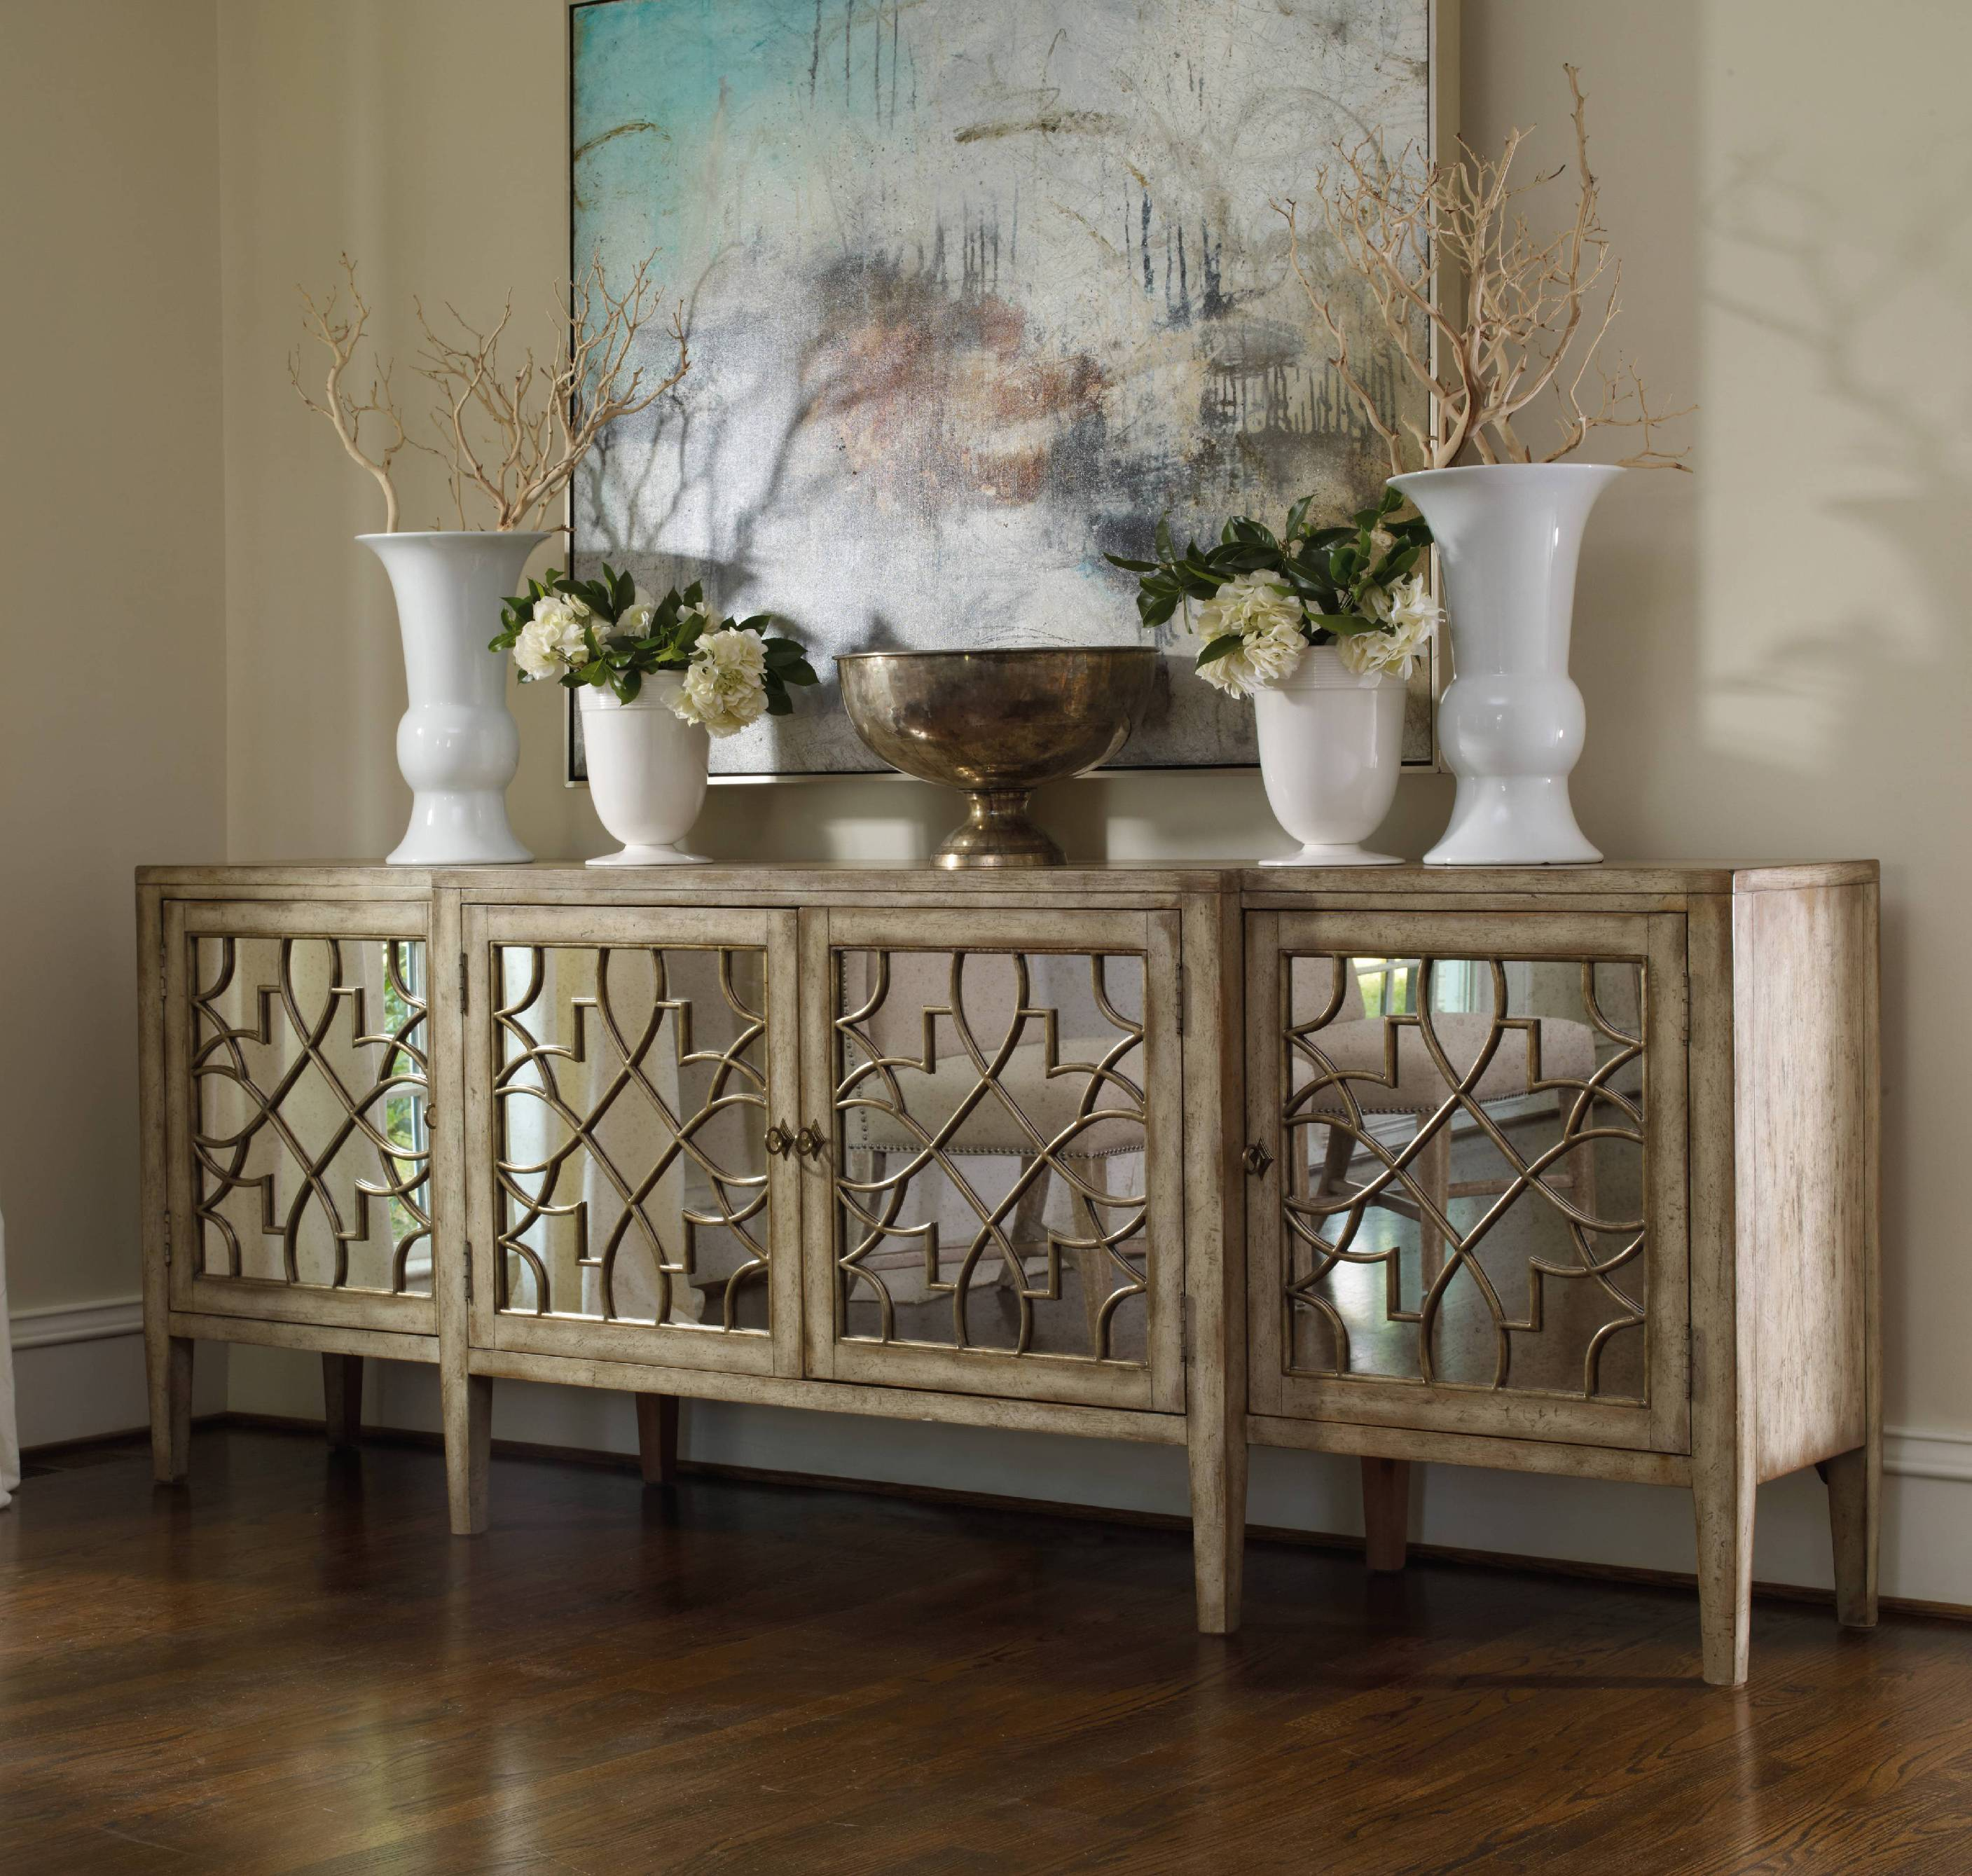 Elegant Classic Mirrored Console Cabinet With Four Main Storage And Decoration